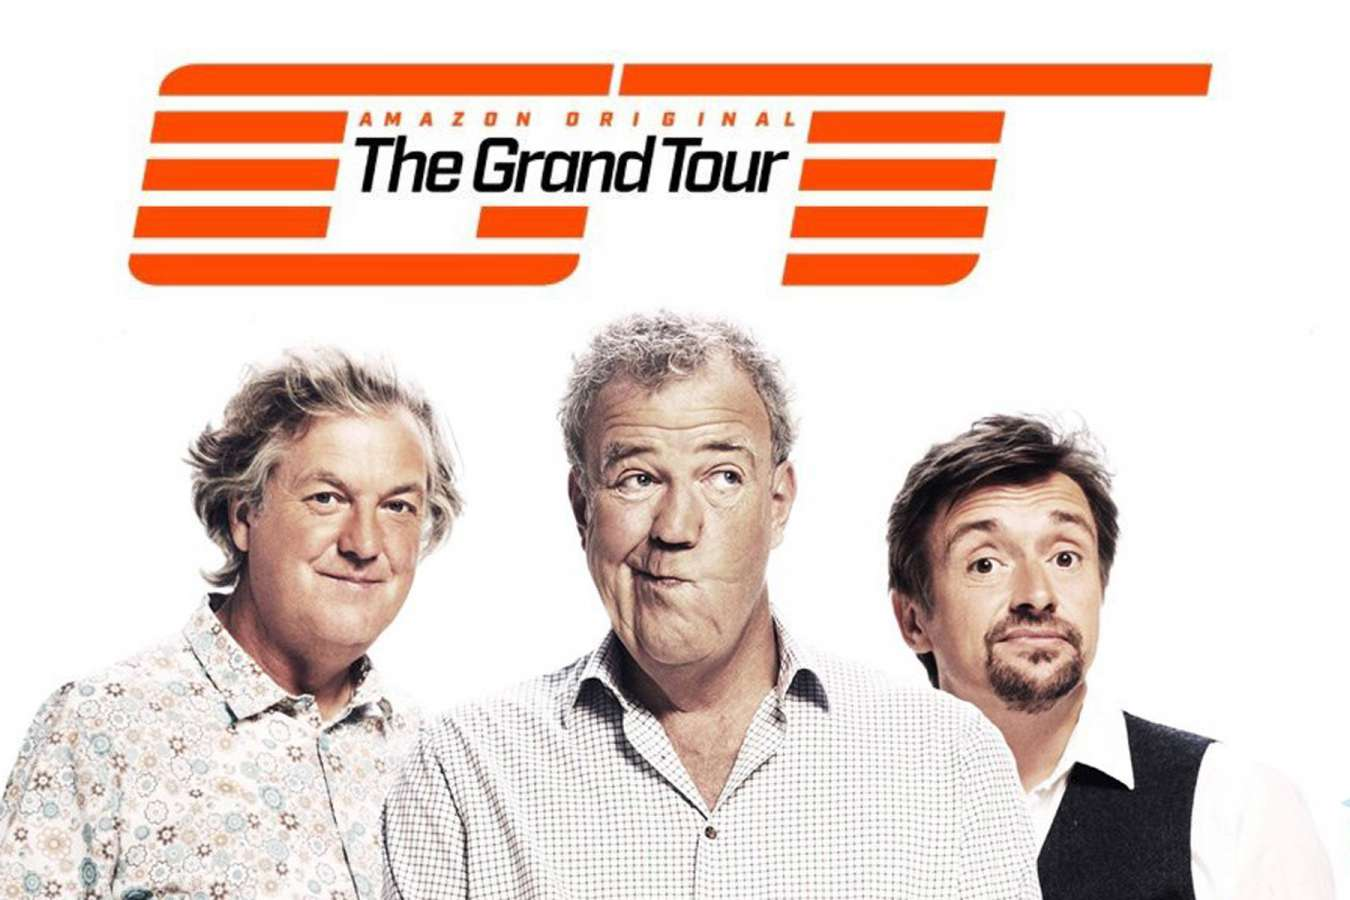 Amazon confirme Saison 4 The Grand Tour